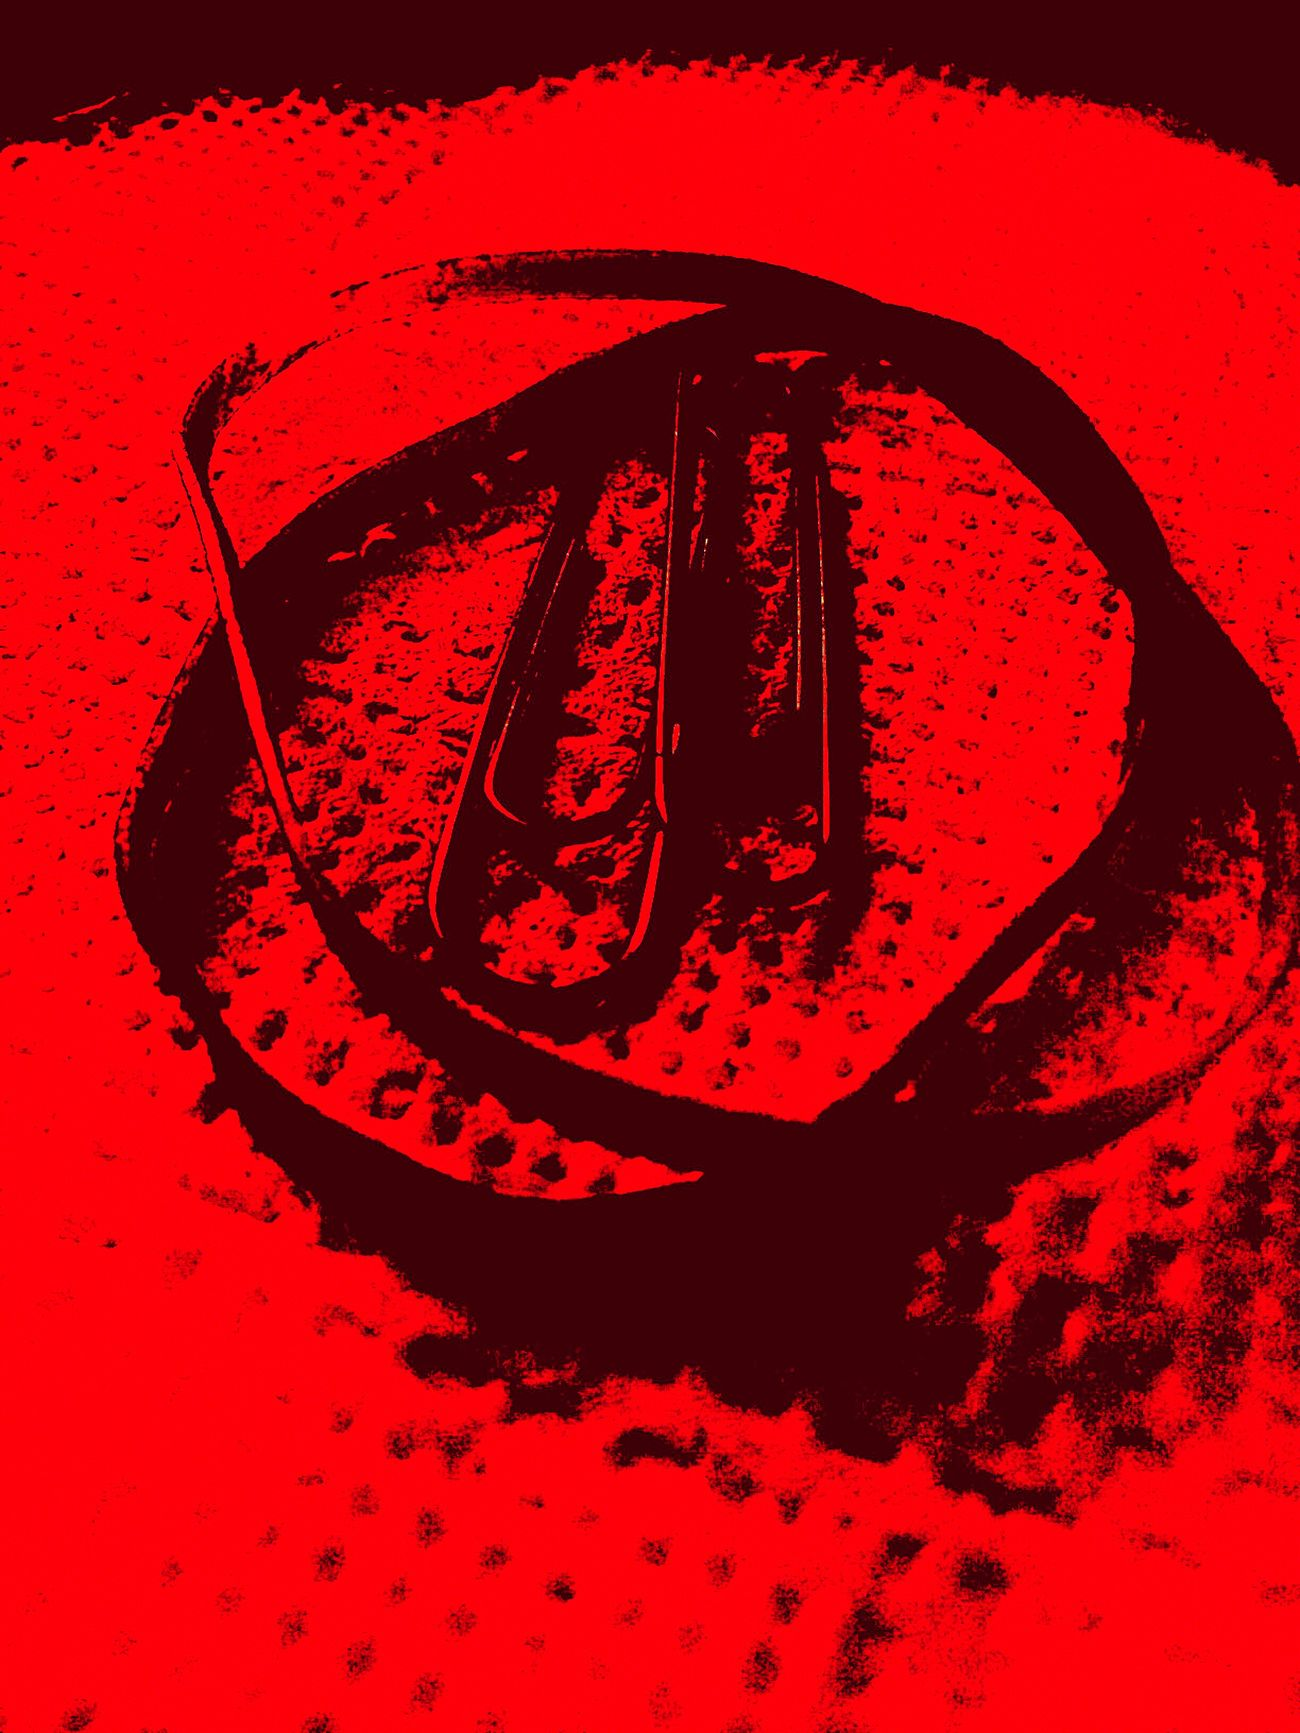 Red Background Close-up Comments Welcome Firsteyeemphoto First Eyem Photo Artistic Testing EyeEm FirstEyeEmPic Question Everything Testing Tesing, 1 2 3 EyeEm Textured  Comments Plz